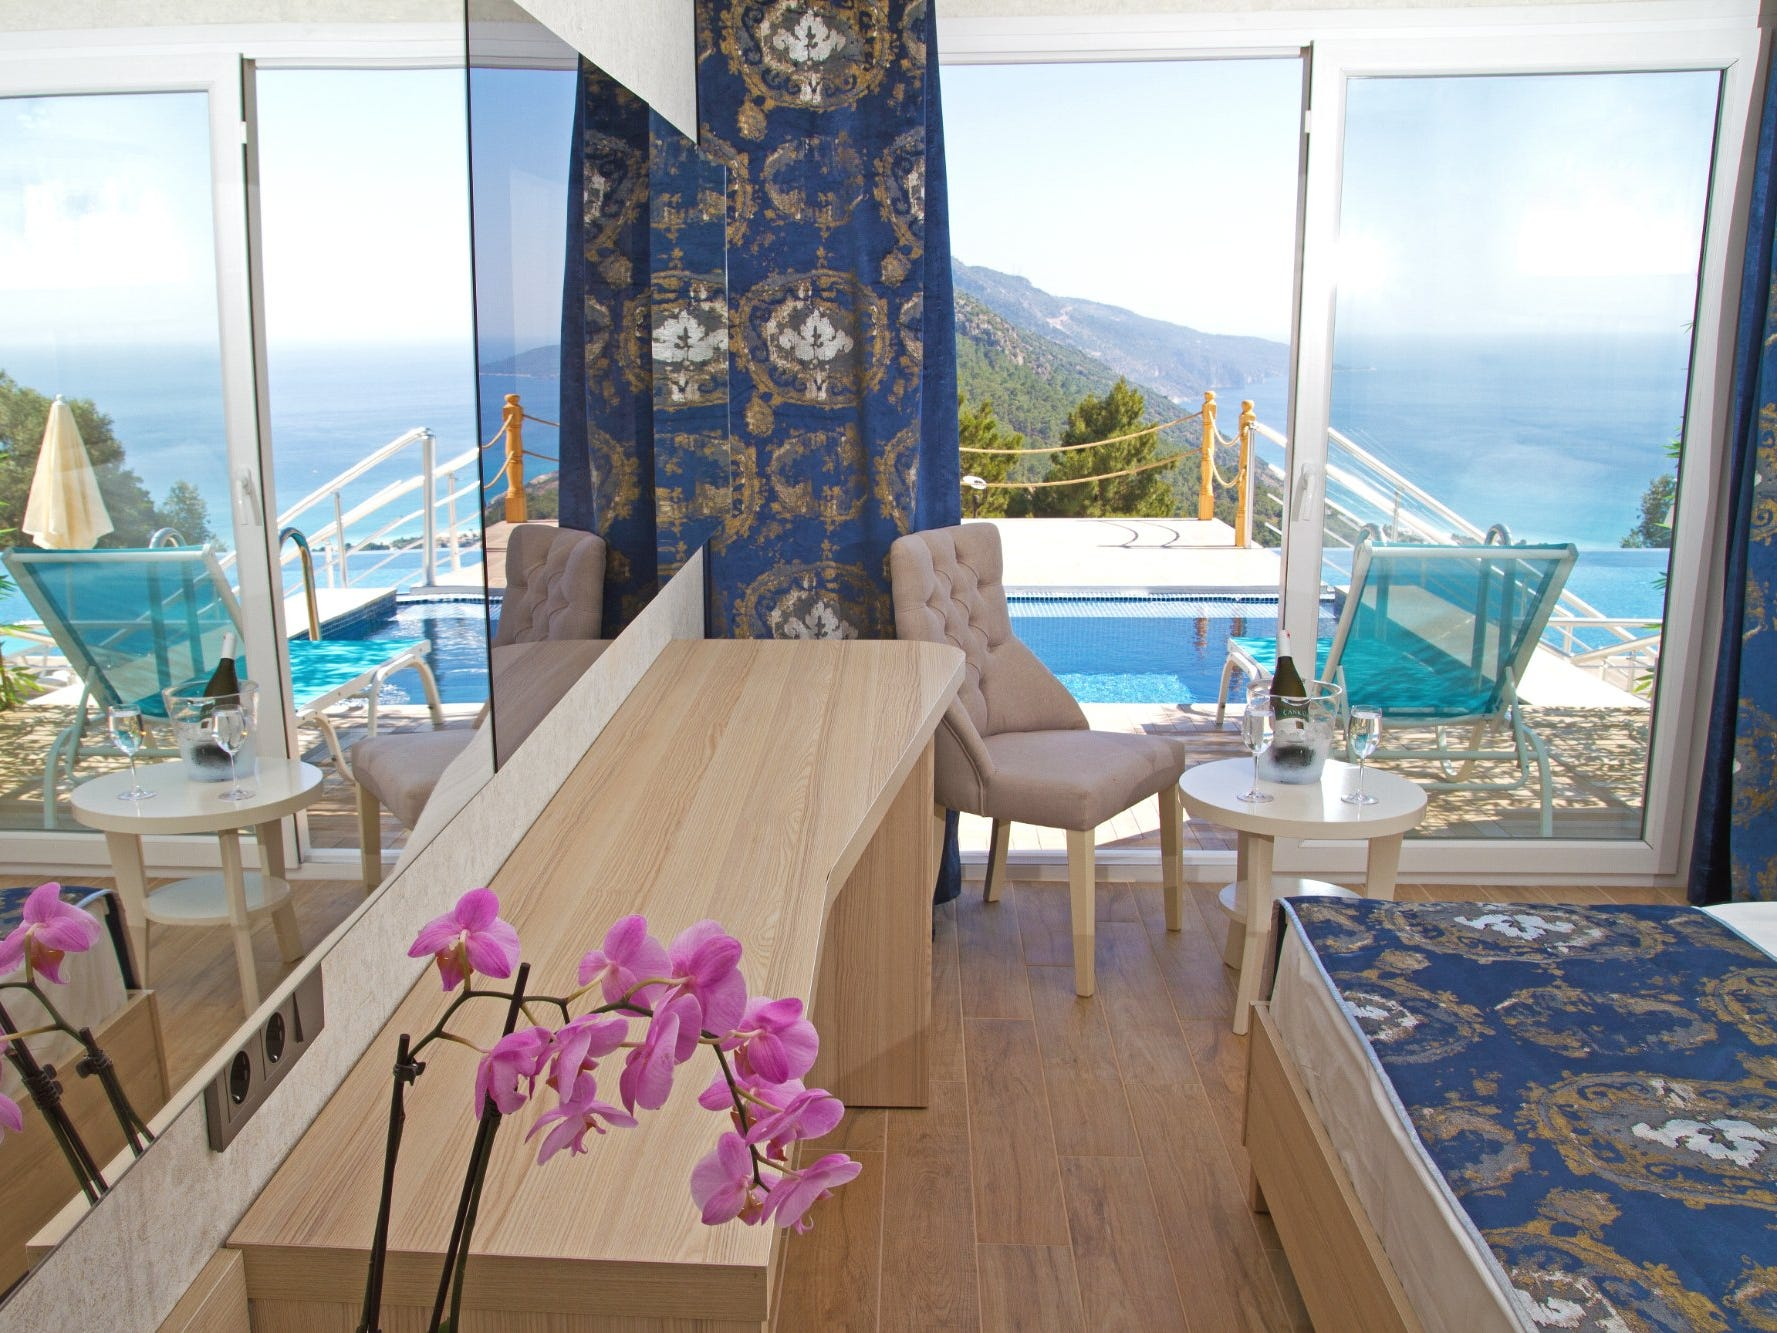 No. 12: Sertil Hotel in Oludeniz, Turkey.